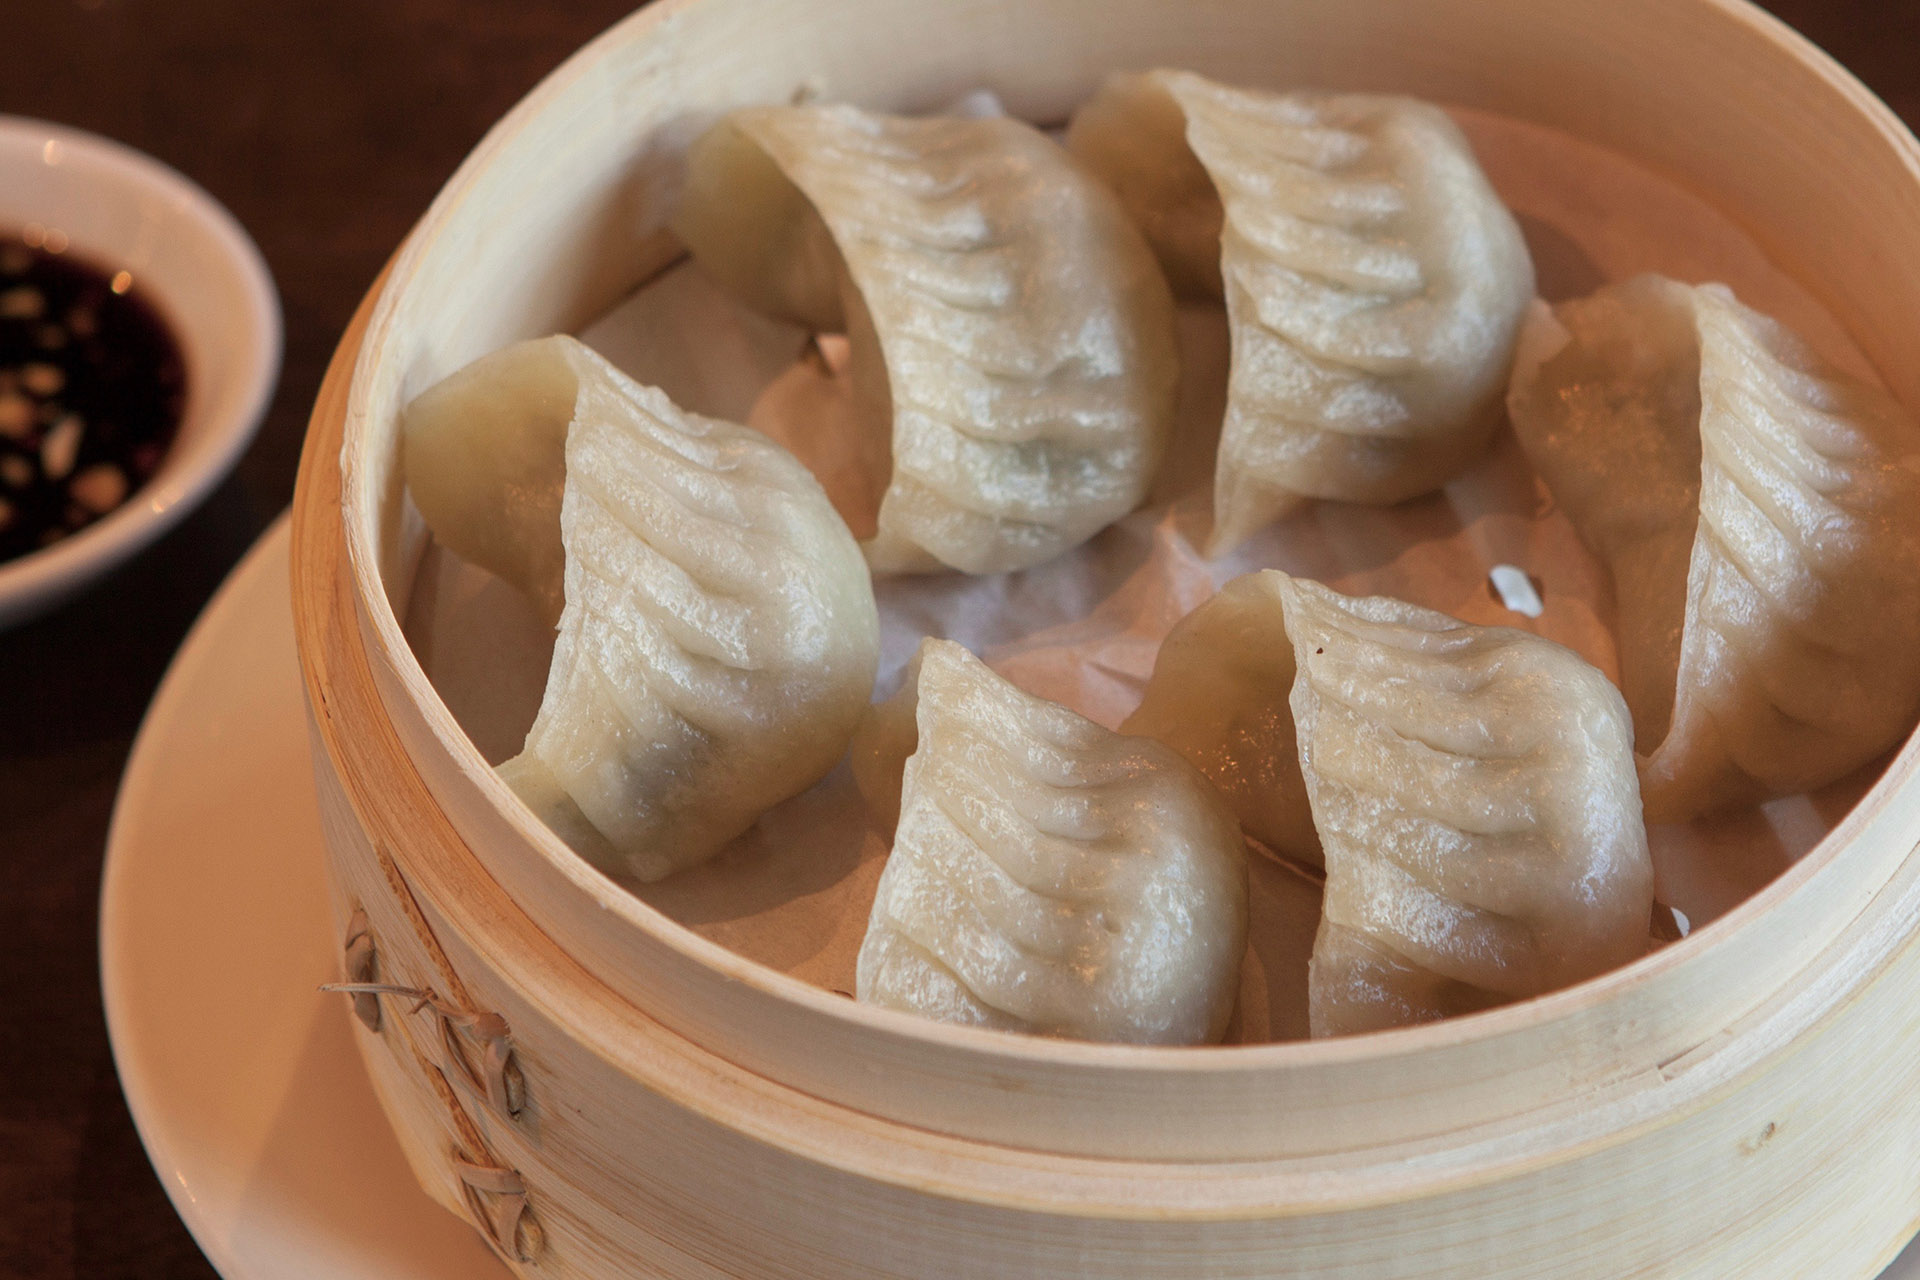 Steamed Vegetable Dumplings [6] at Lee Chen Asian Bistro